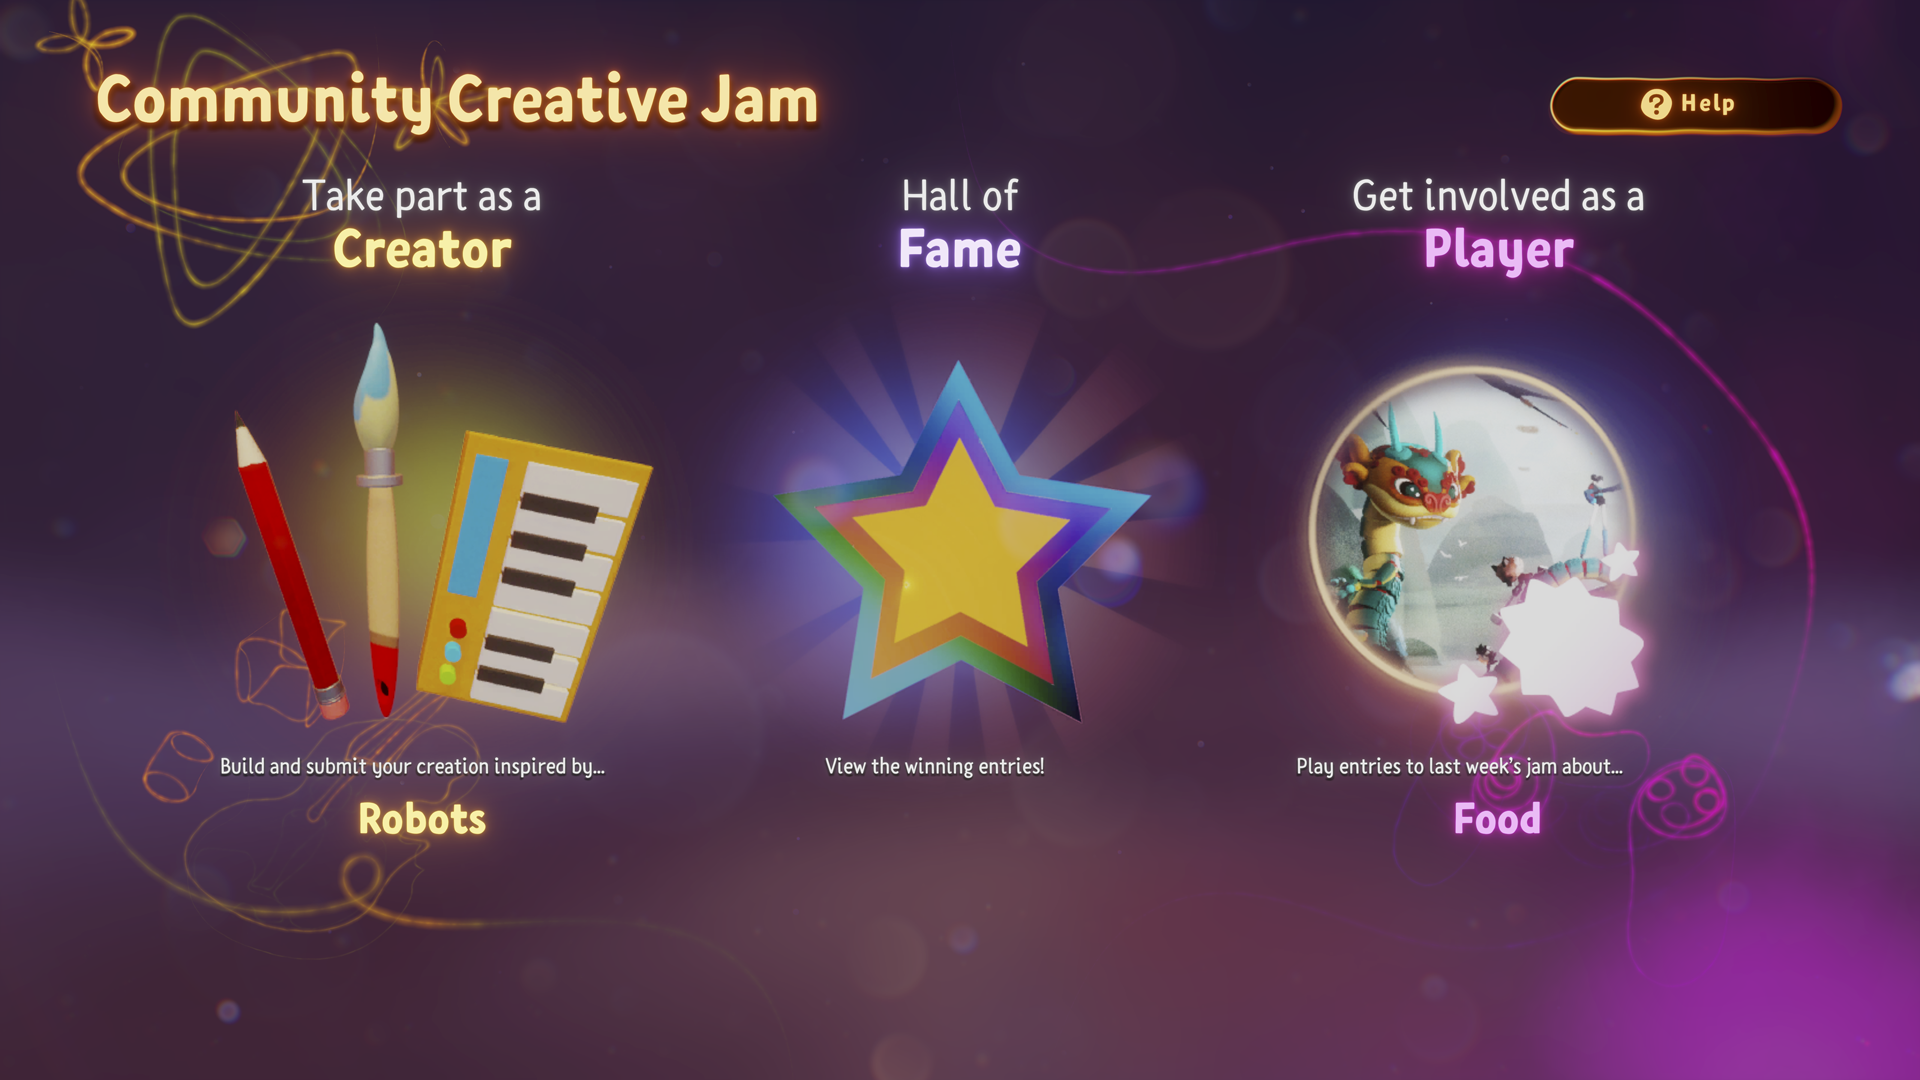 Dreams - Community Creative Jam Image